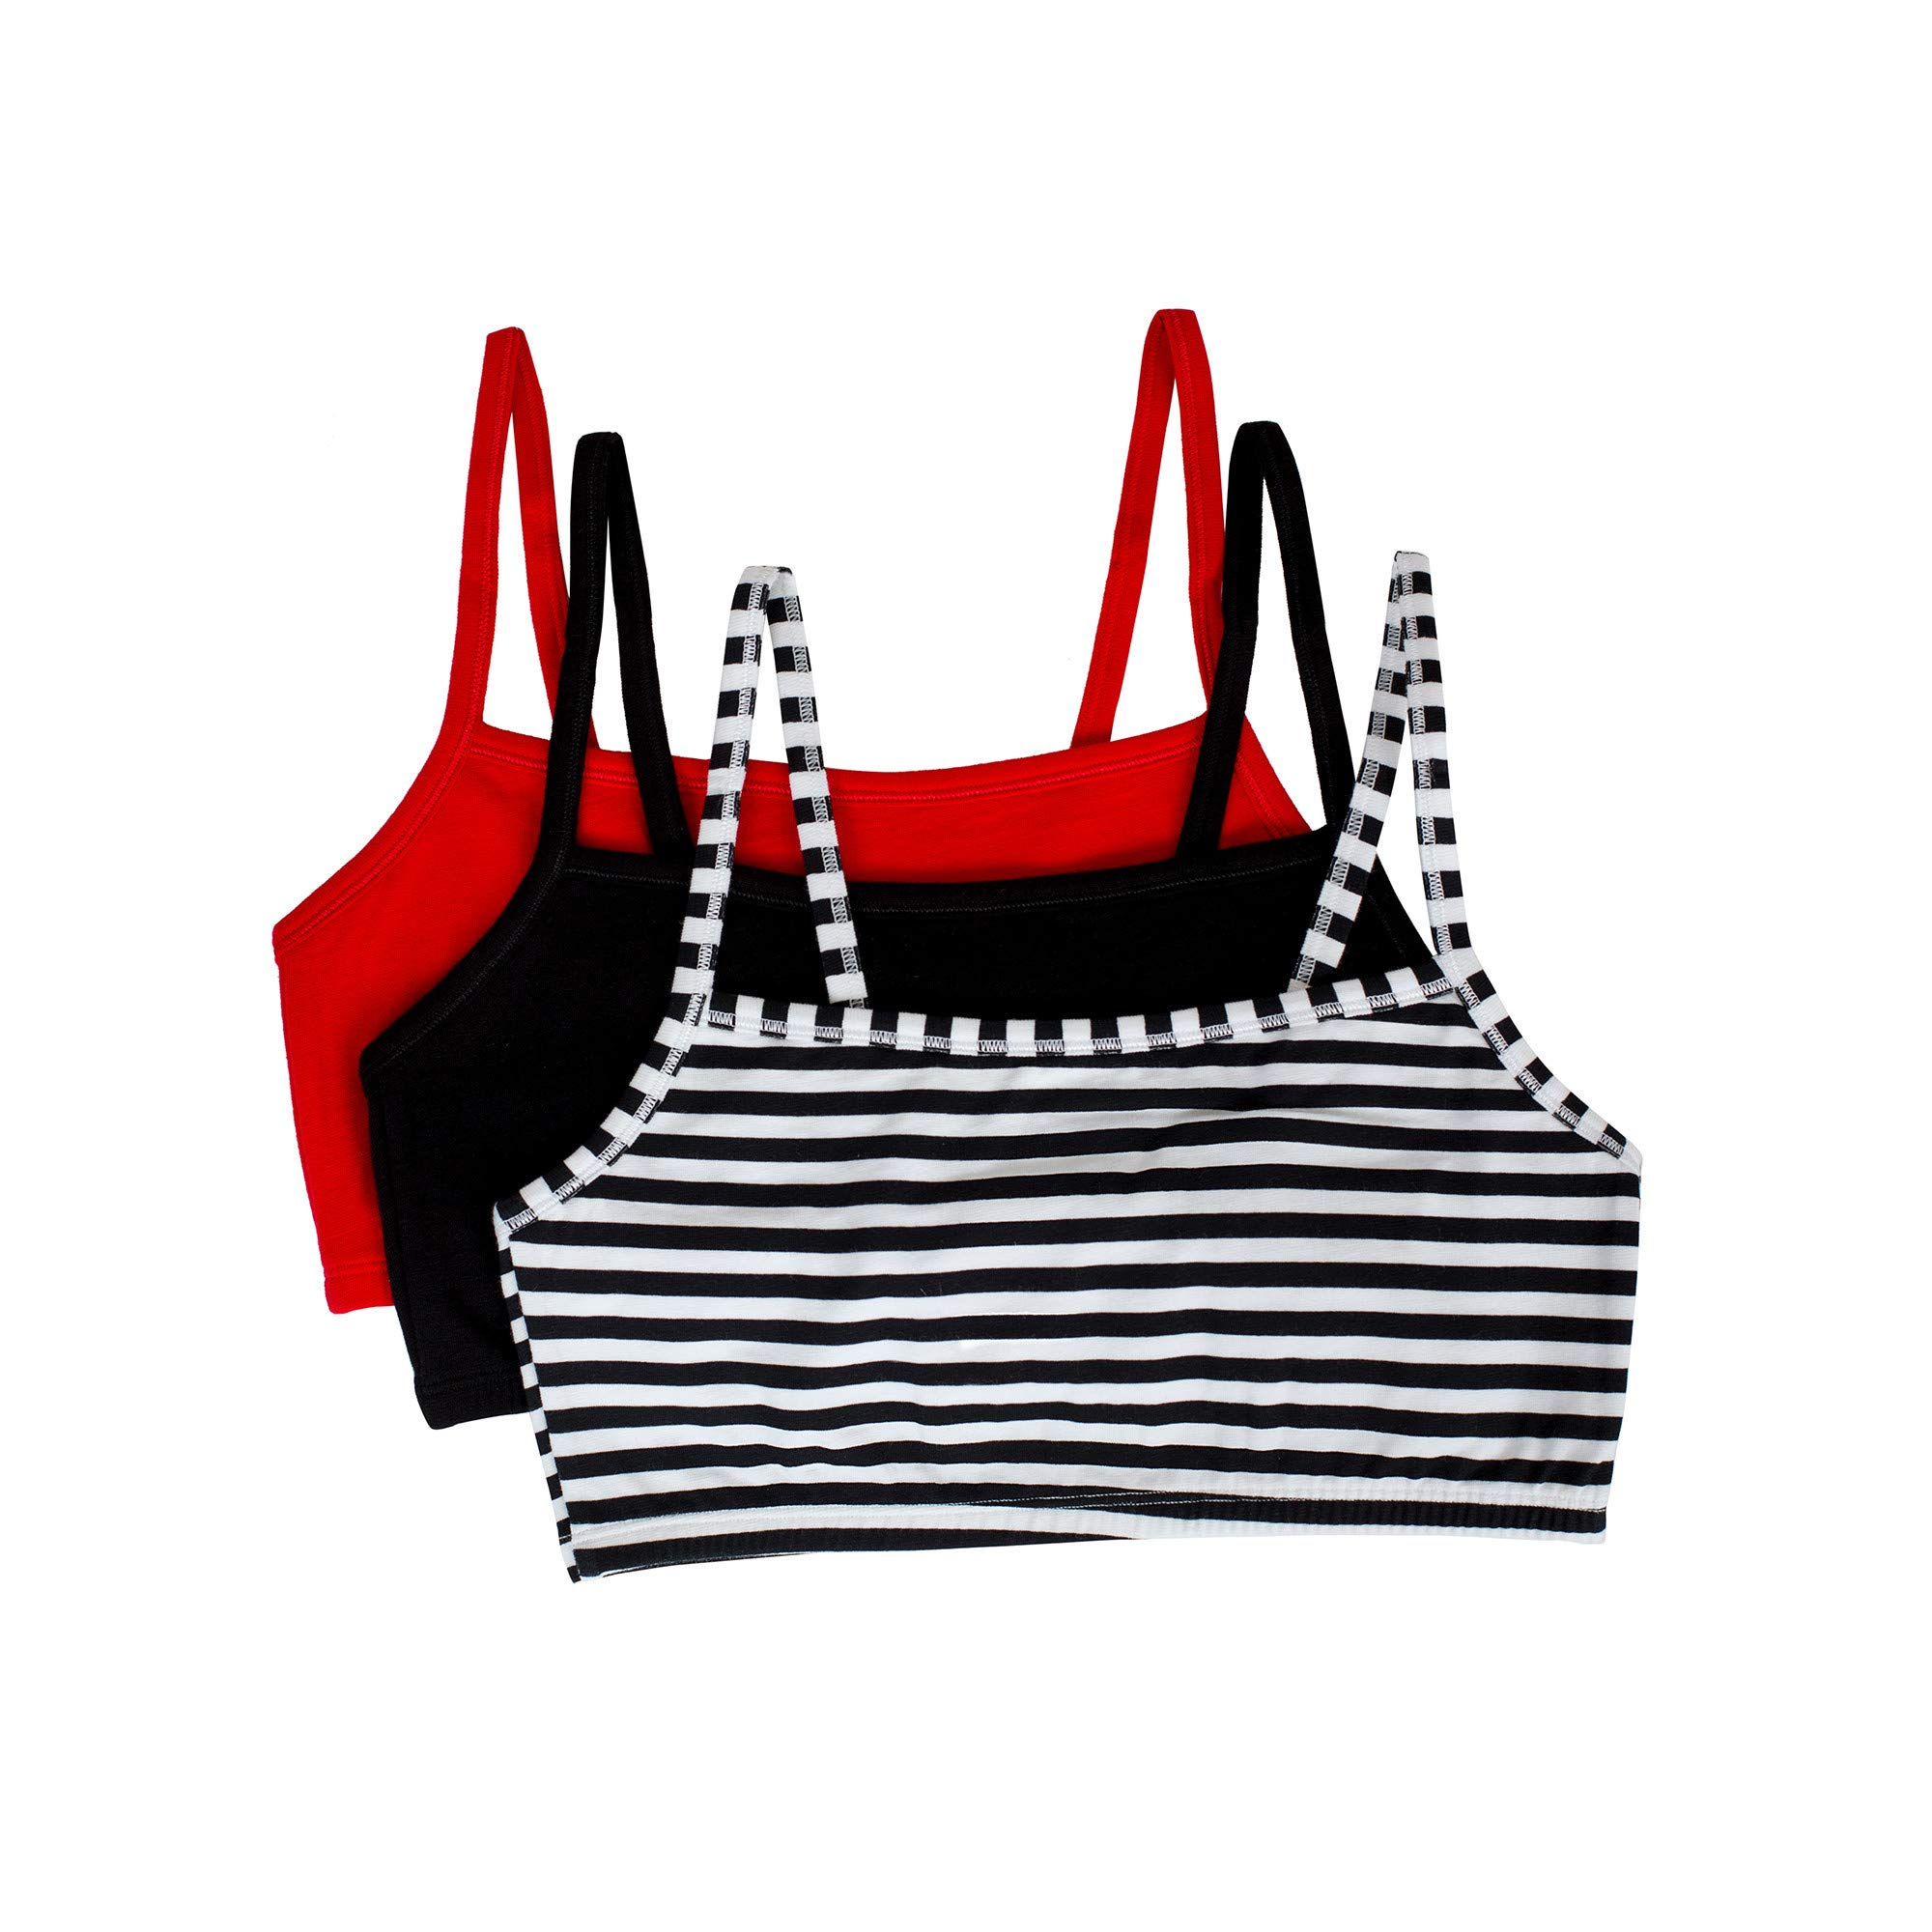 Fruit of the Loom Women's Cotton Pullover Sport Bra (Pack of 3) Bra, Skinny Stripe/Black/red hot, 44 by Fruit of the Loom